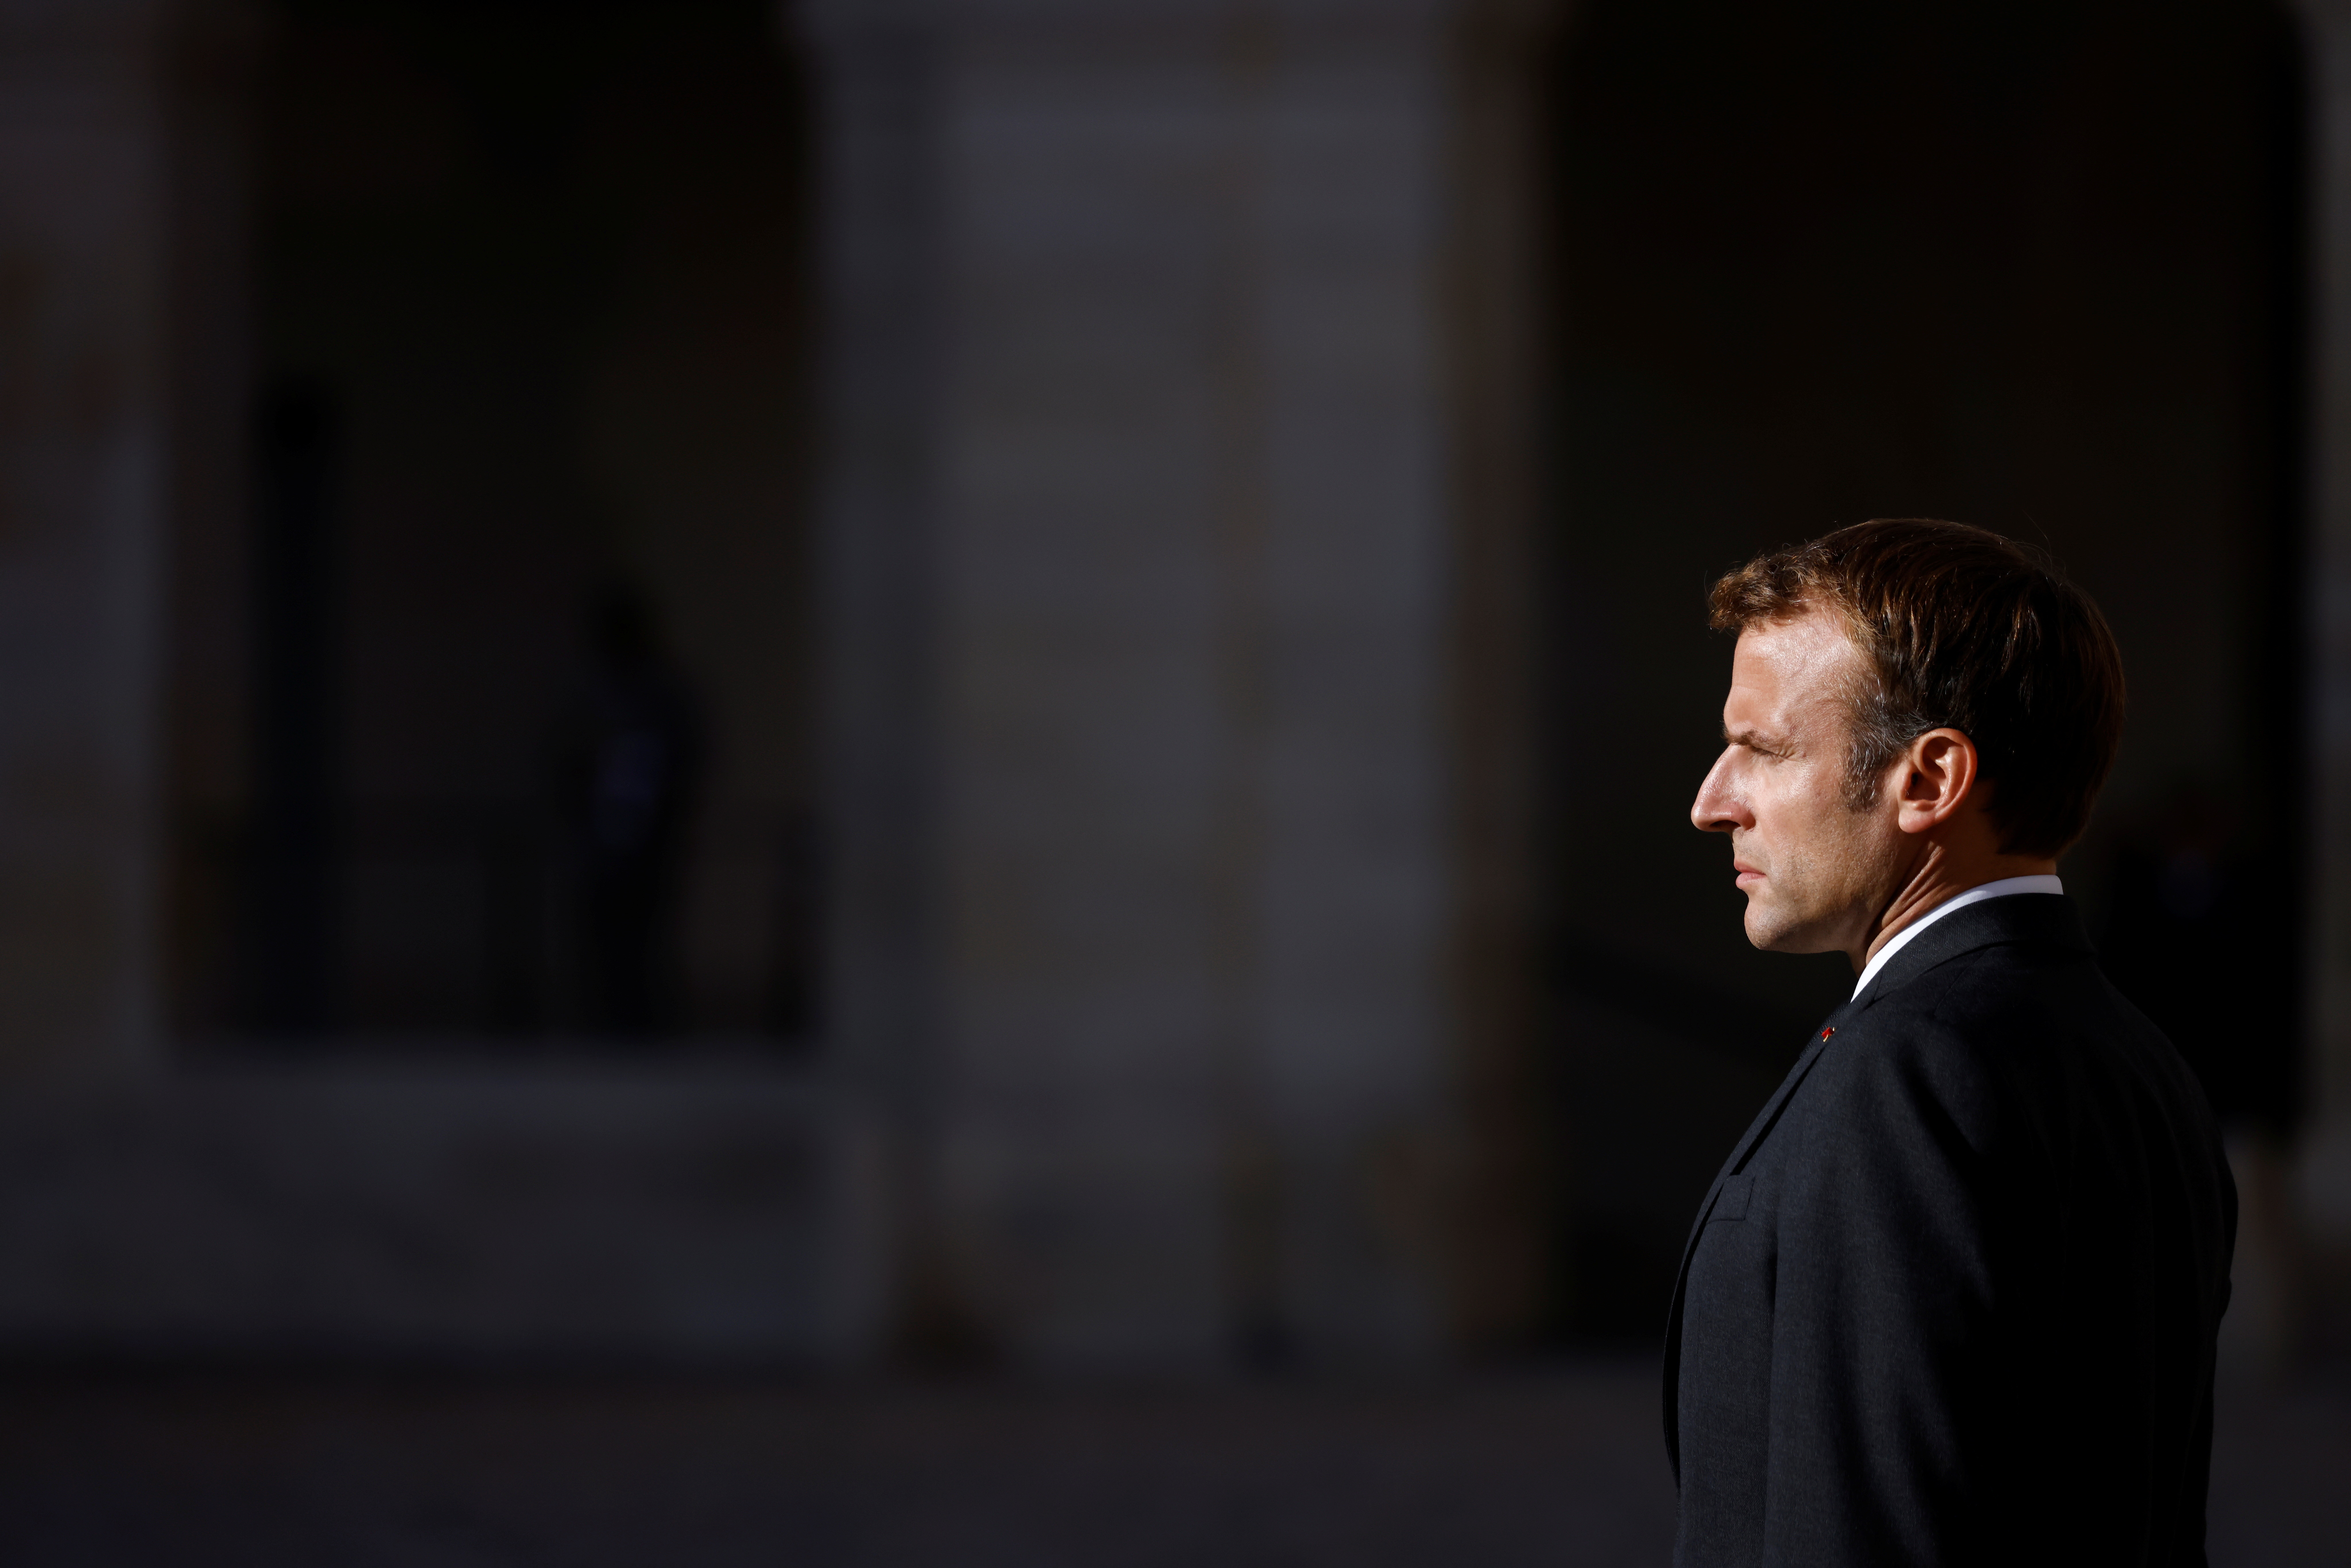 French President Emmanuel Macron attends a national ceremony for late Maxime Blasco, a French soldier killed in Mali militant clash, at the Invalides in Paris, France, September 29, 2021. REUTERS/Stephane Mahe/Pool - RC2RZP9FFV8D